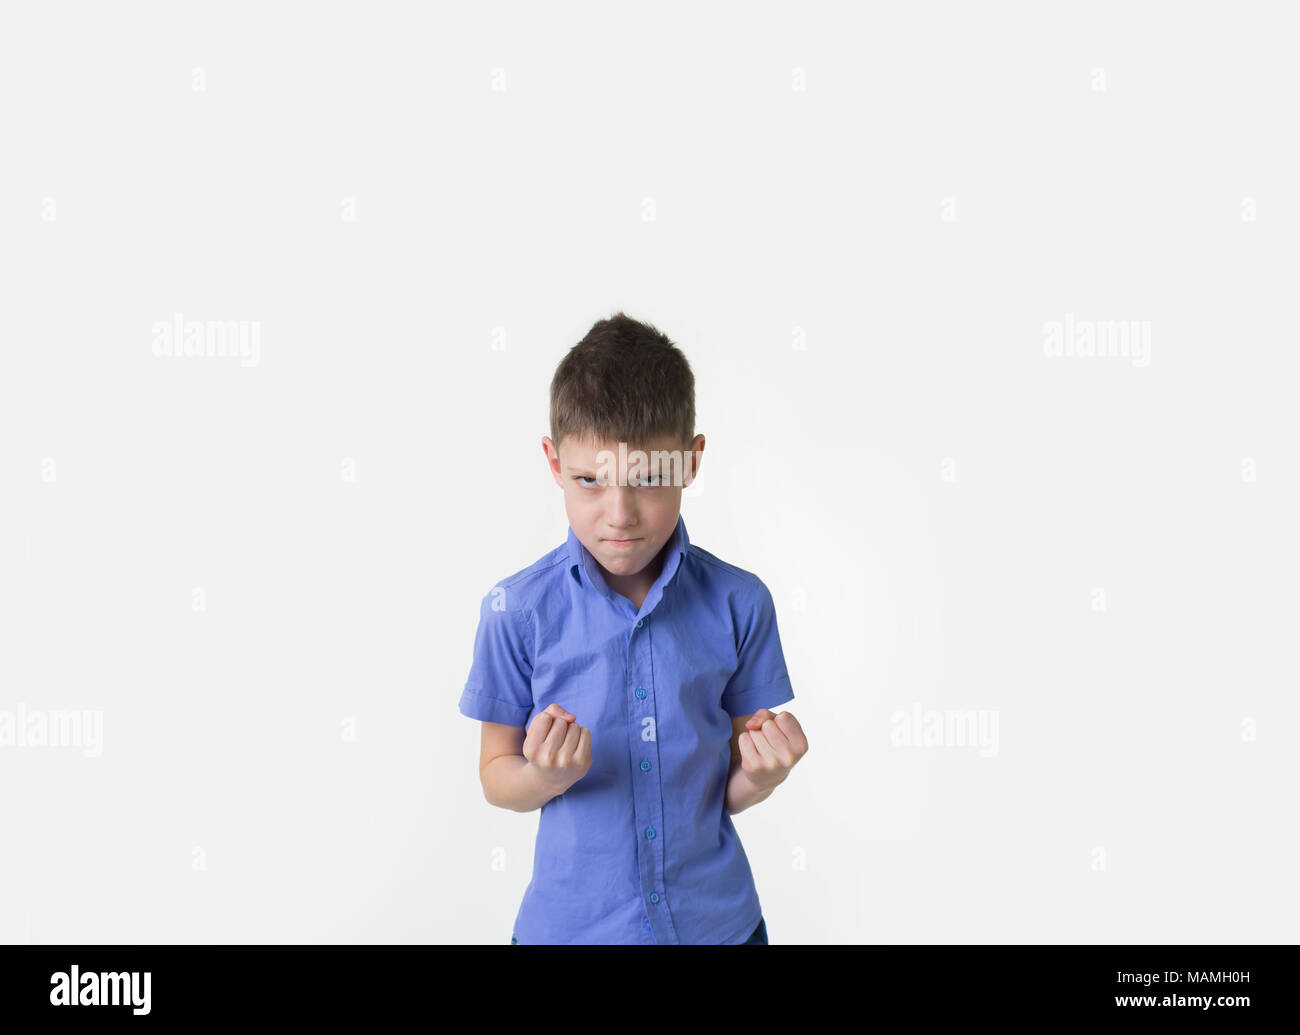 angry young boy with fists clenched isolated on white - Stock Image